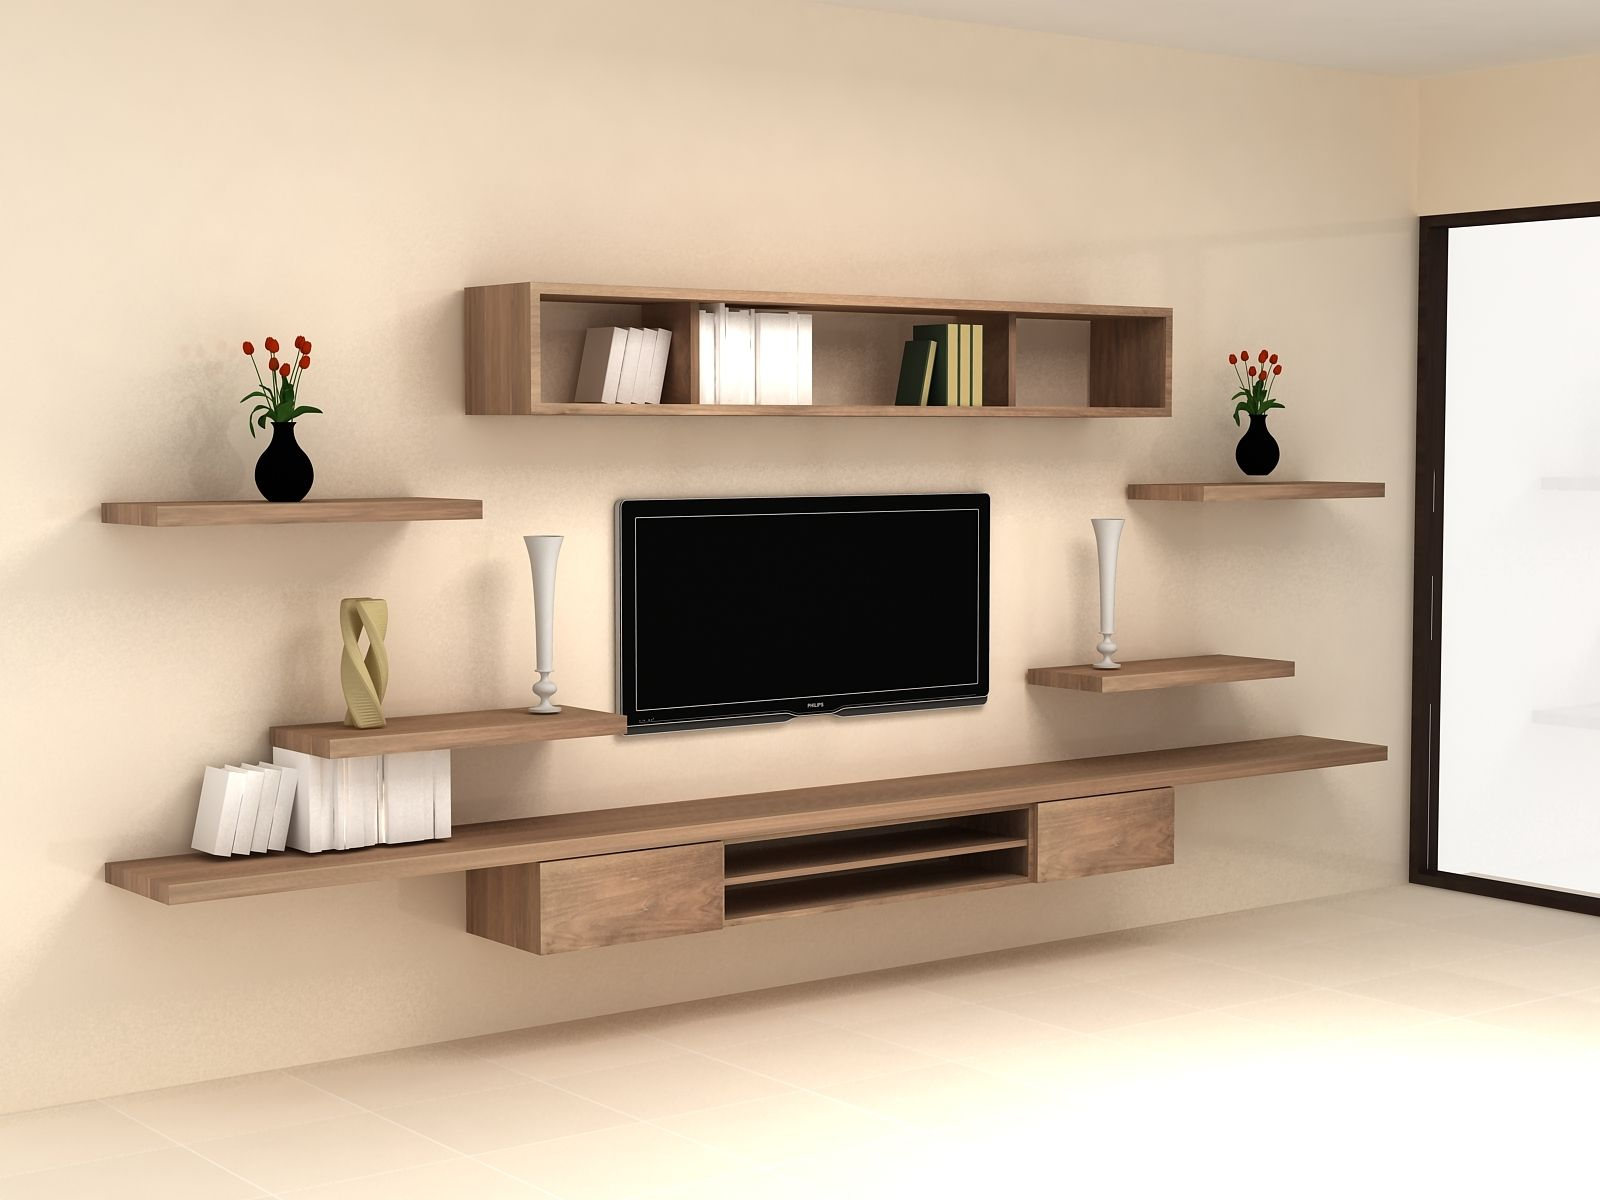 Tv Wall Decor, Tv Unit